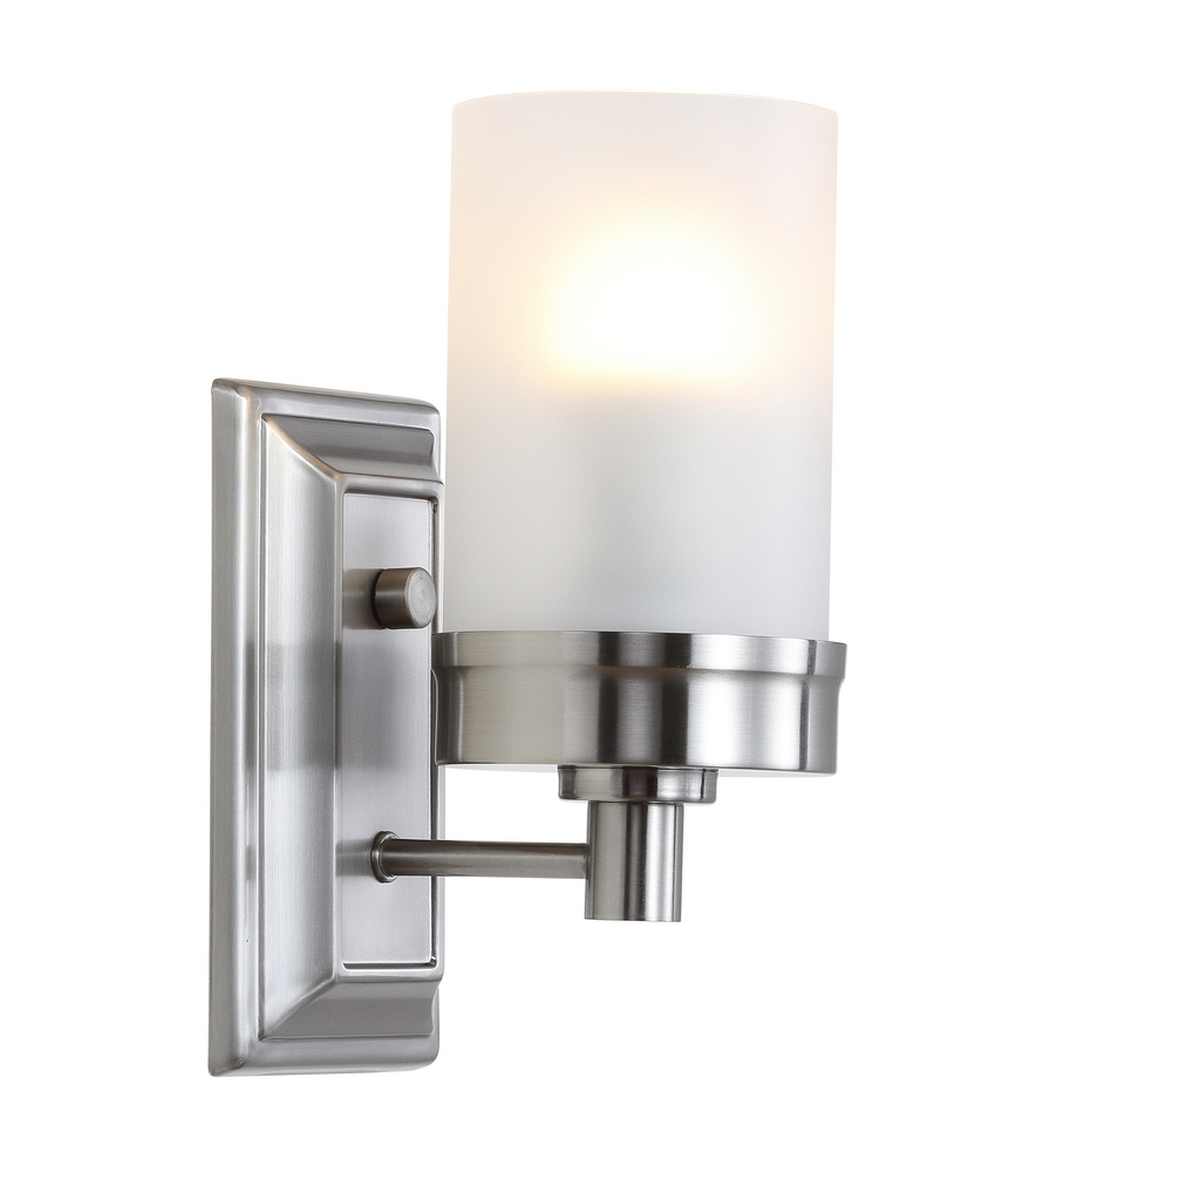 Scn4047a Sconces Lighting By Safavieh